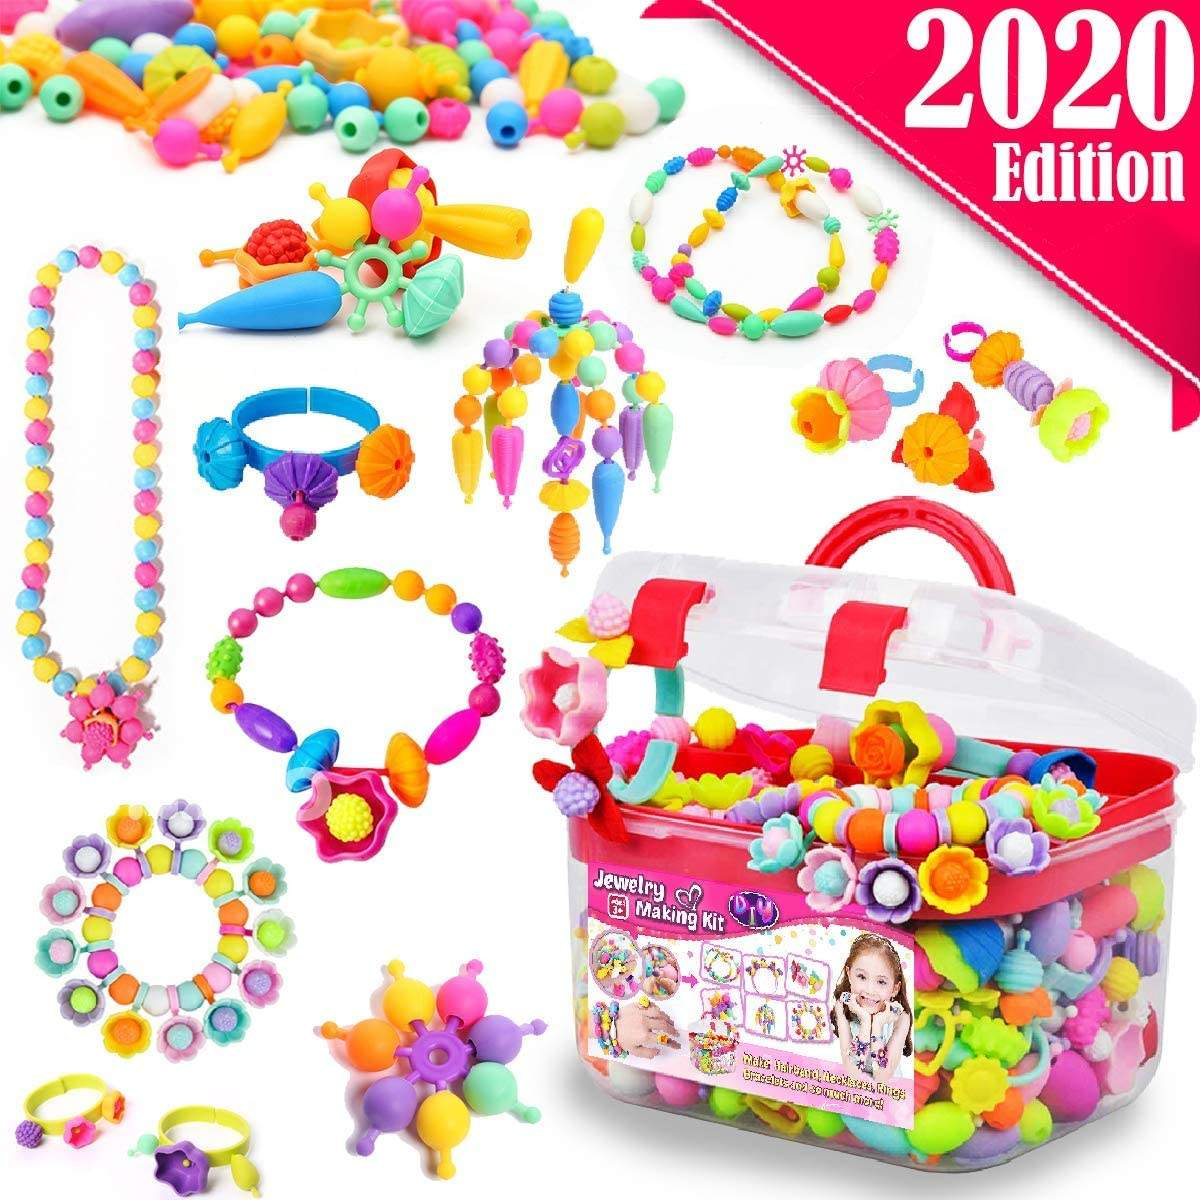 colorful Art Crafts Creativity DIY Beads Jewelry Educational Toys Pop Beads Set for Girls